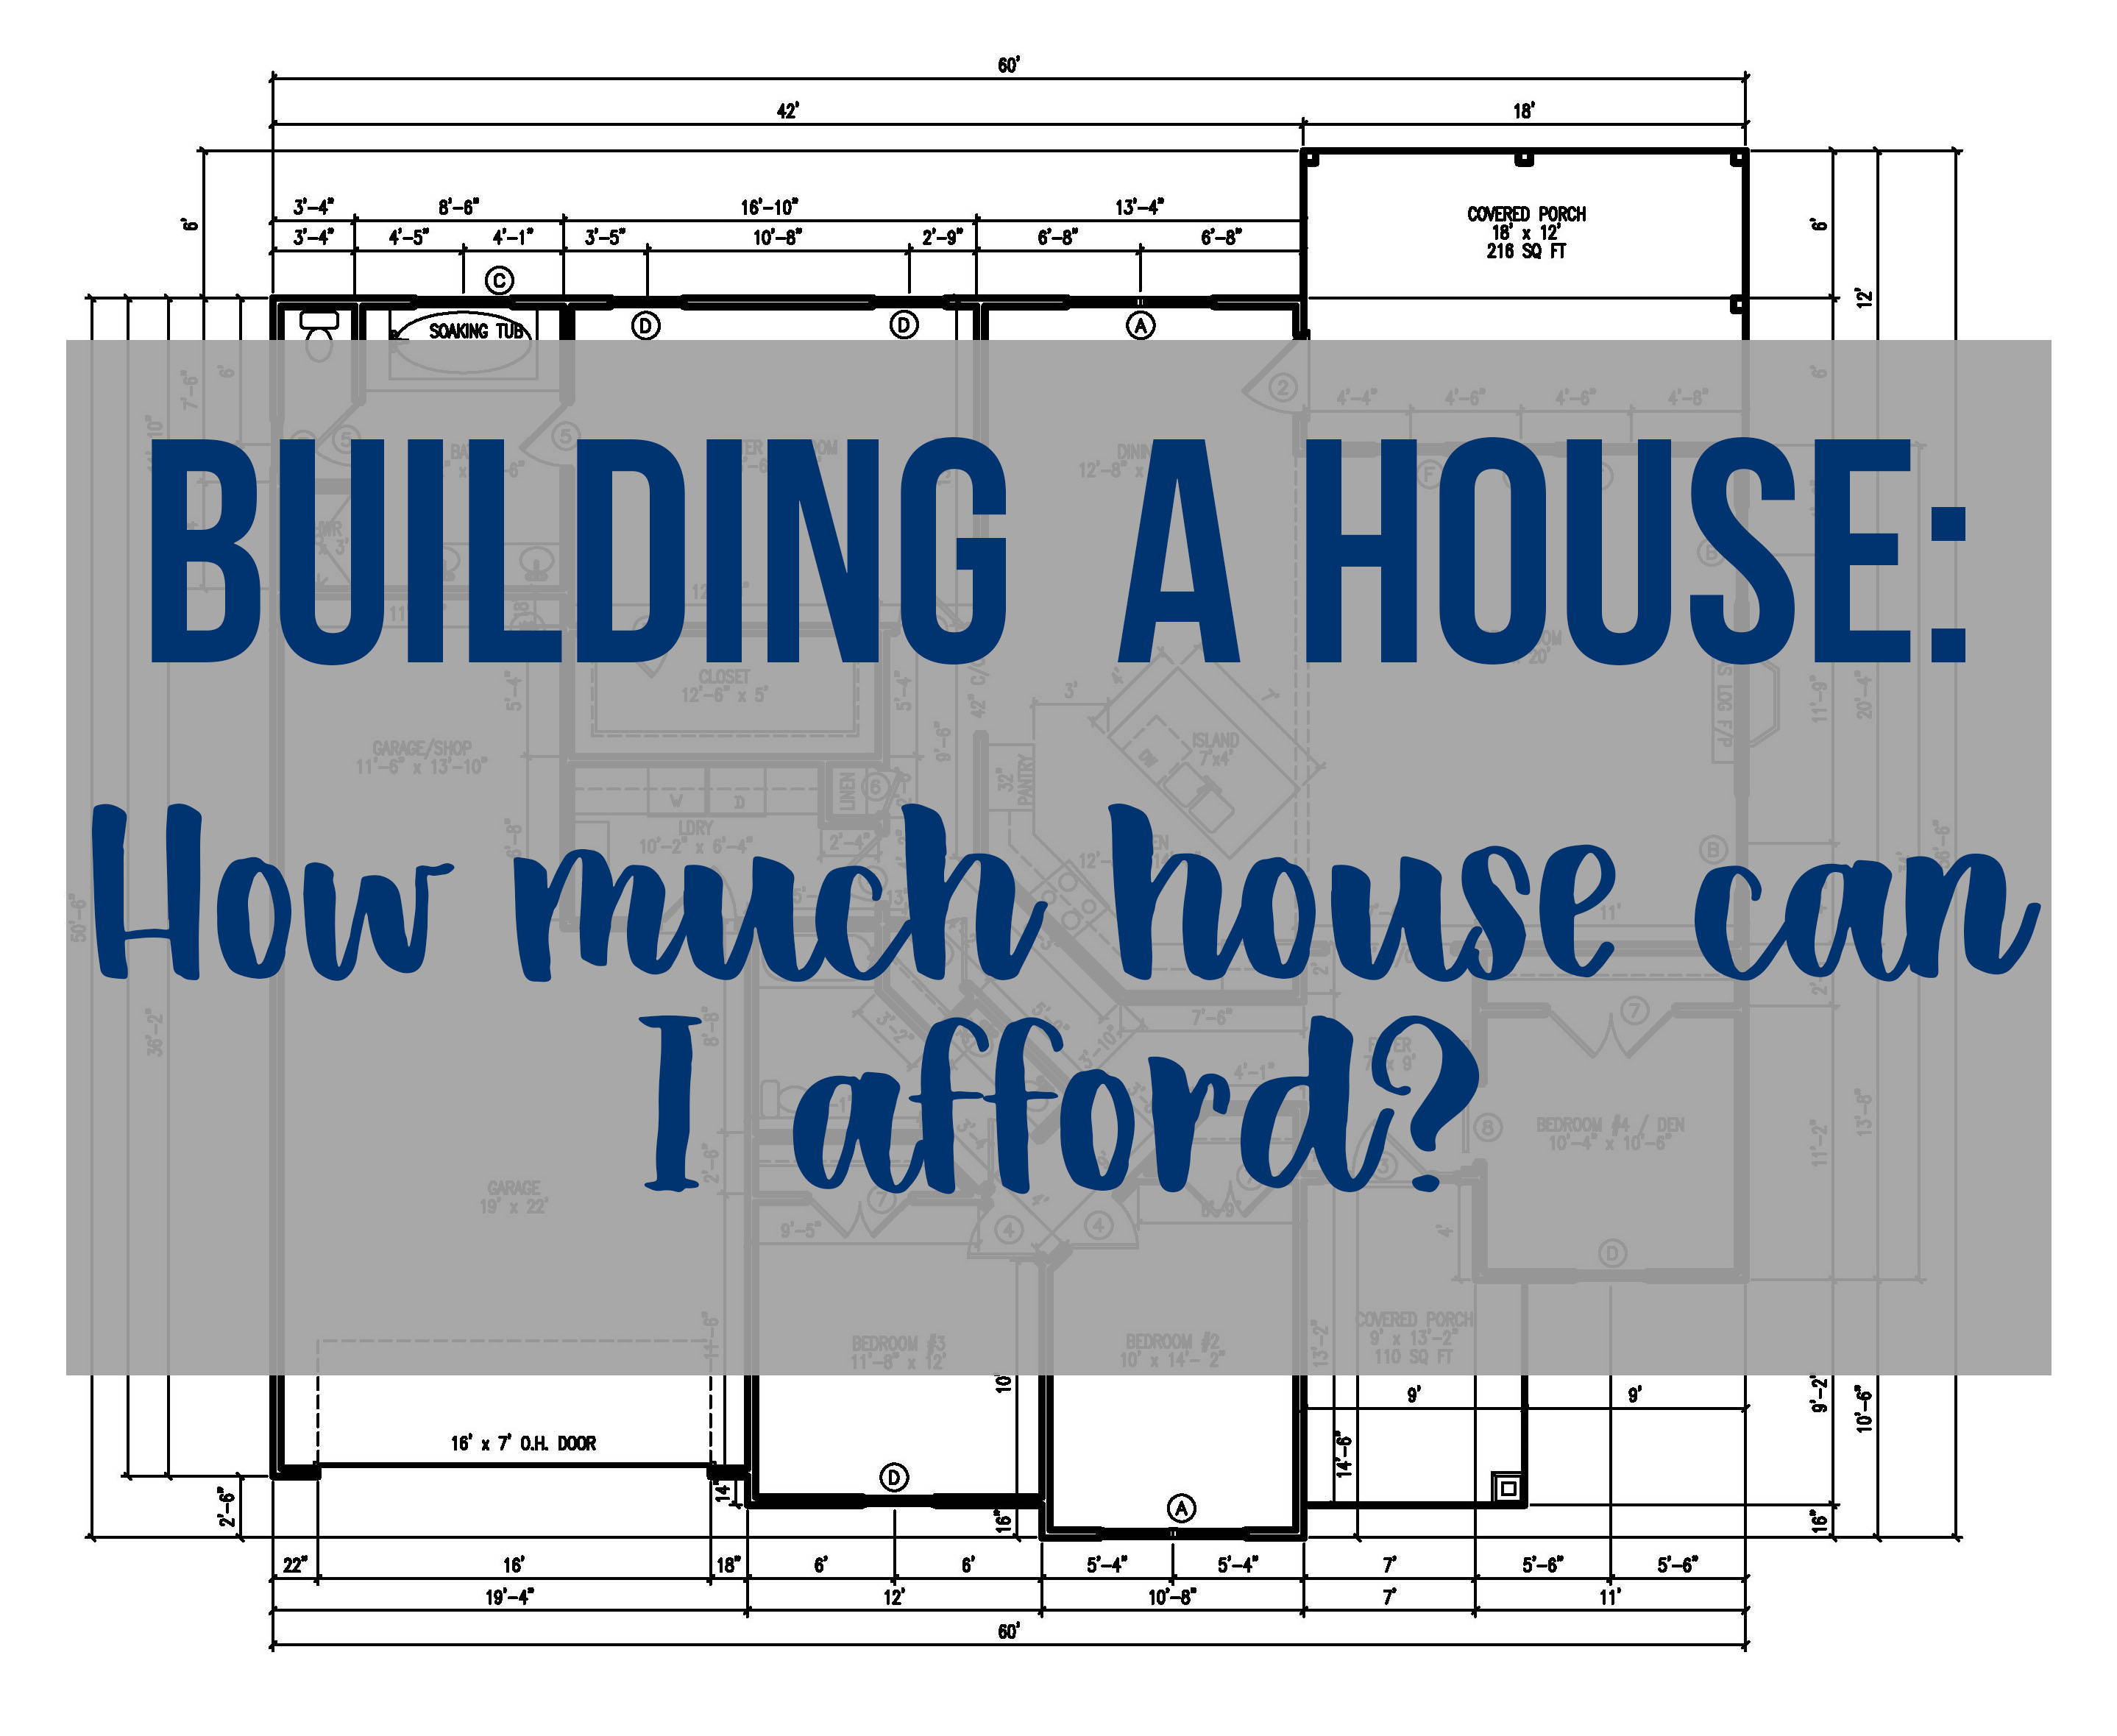 house plans how much can I afford (1 of 1)